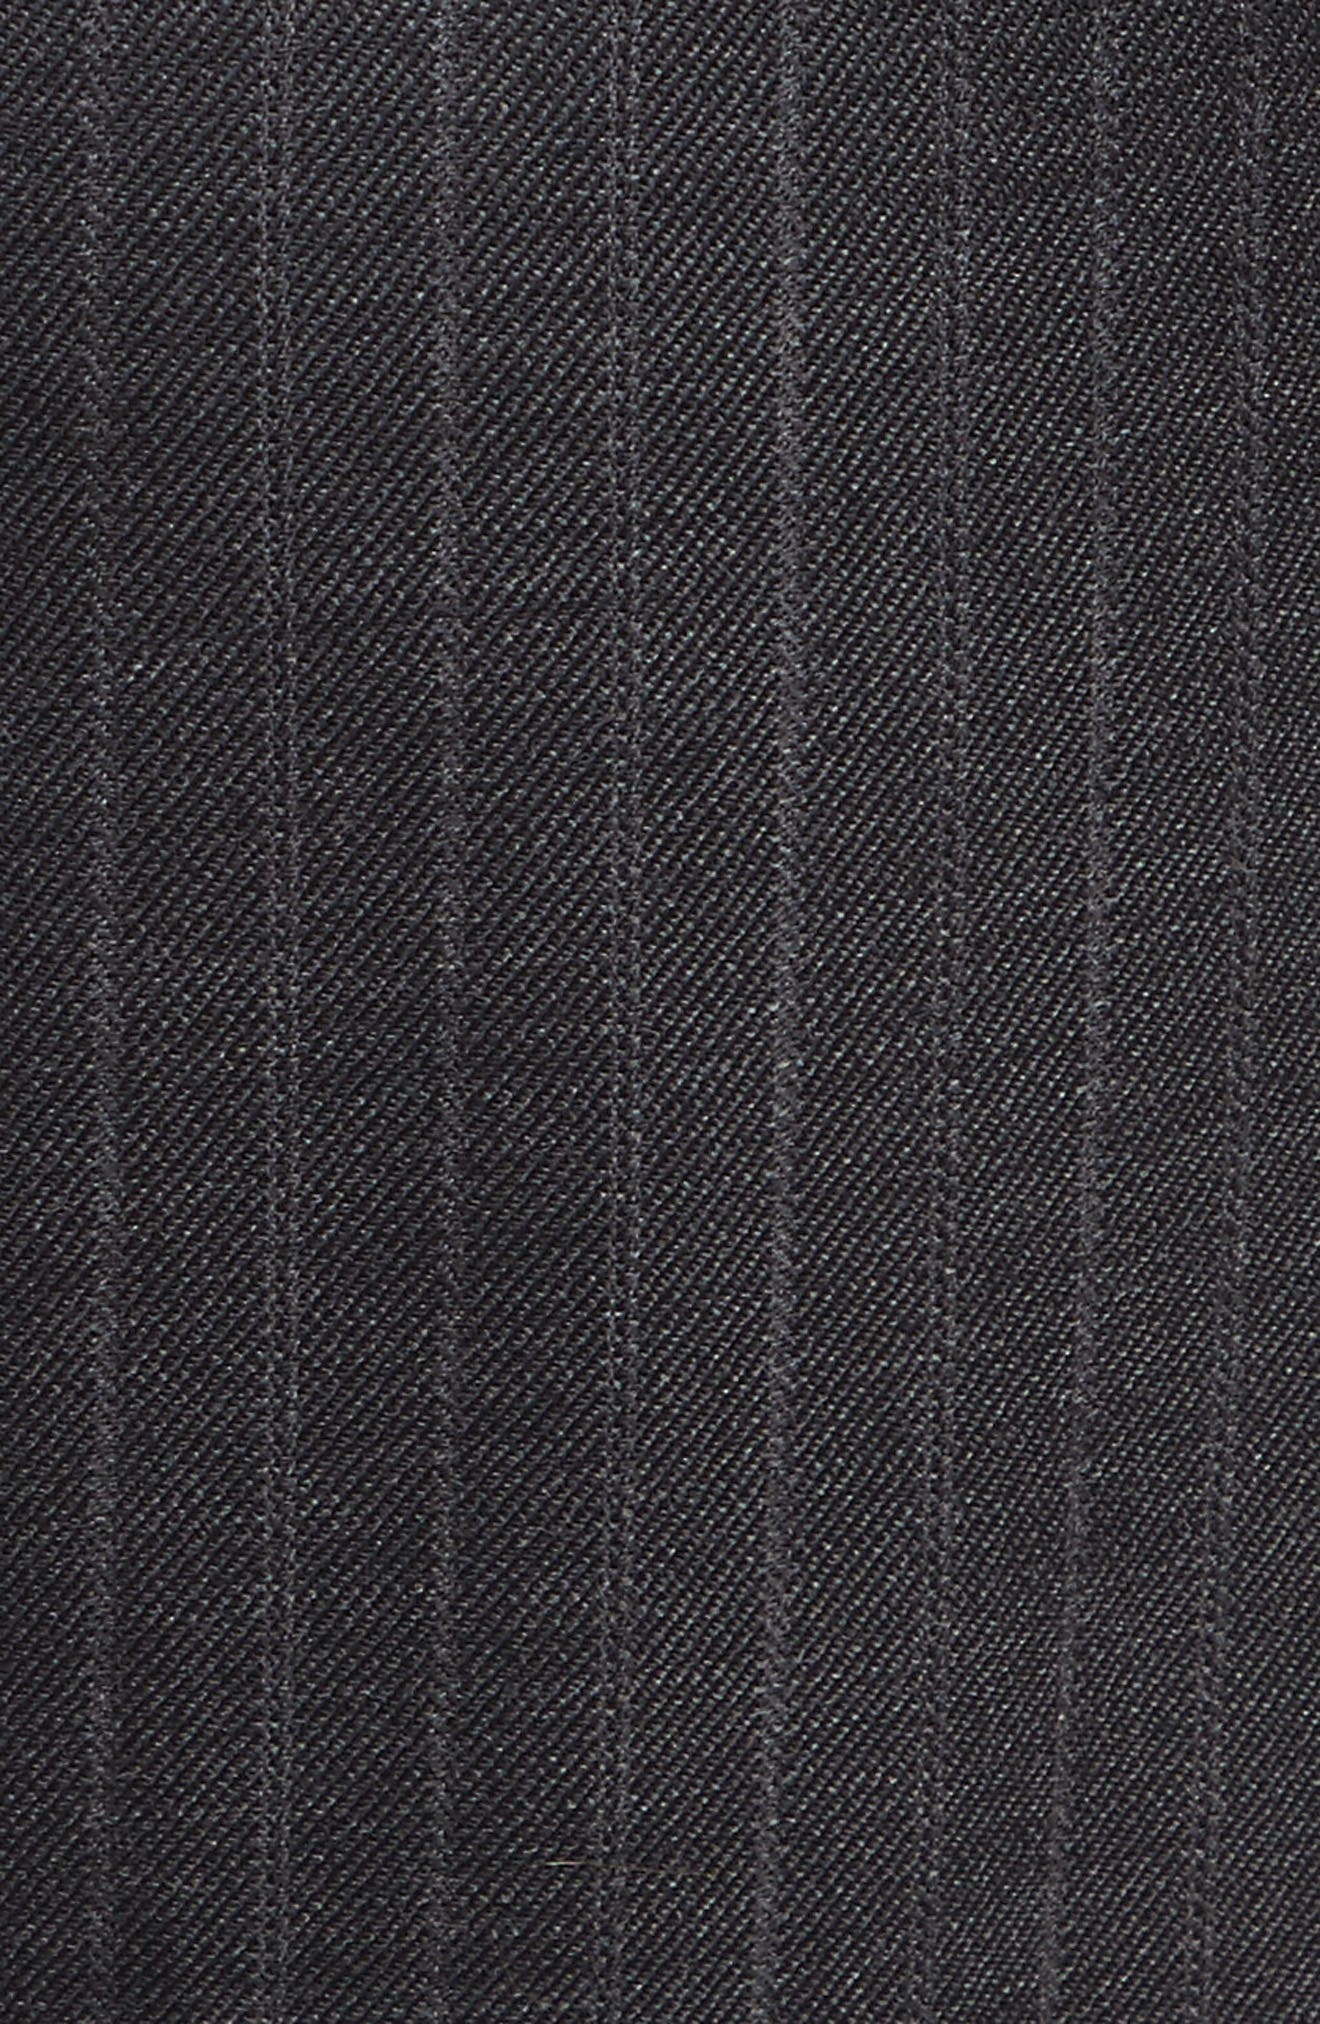 Sia Pinstripe Italian Stretch Wool Trousers,                             Alternate thumbnail 5, color,